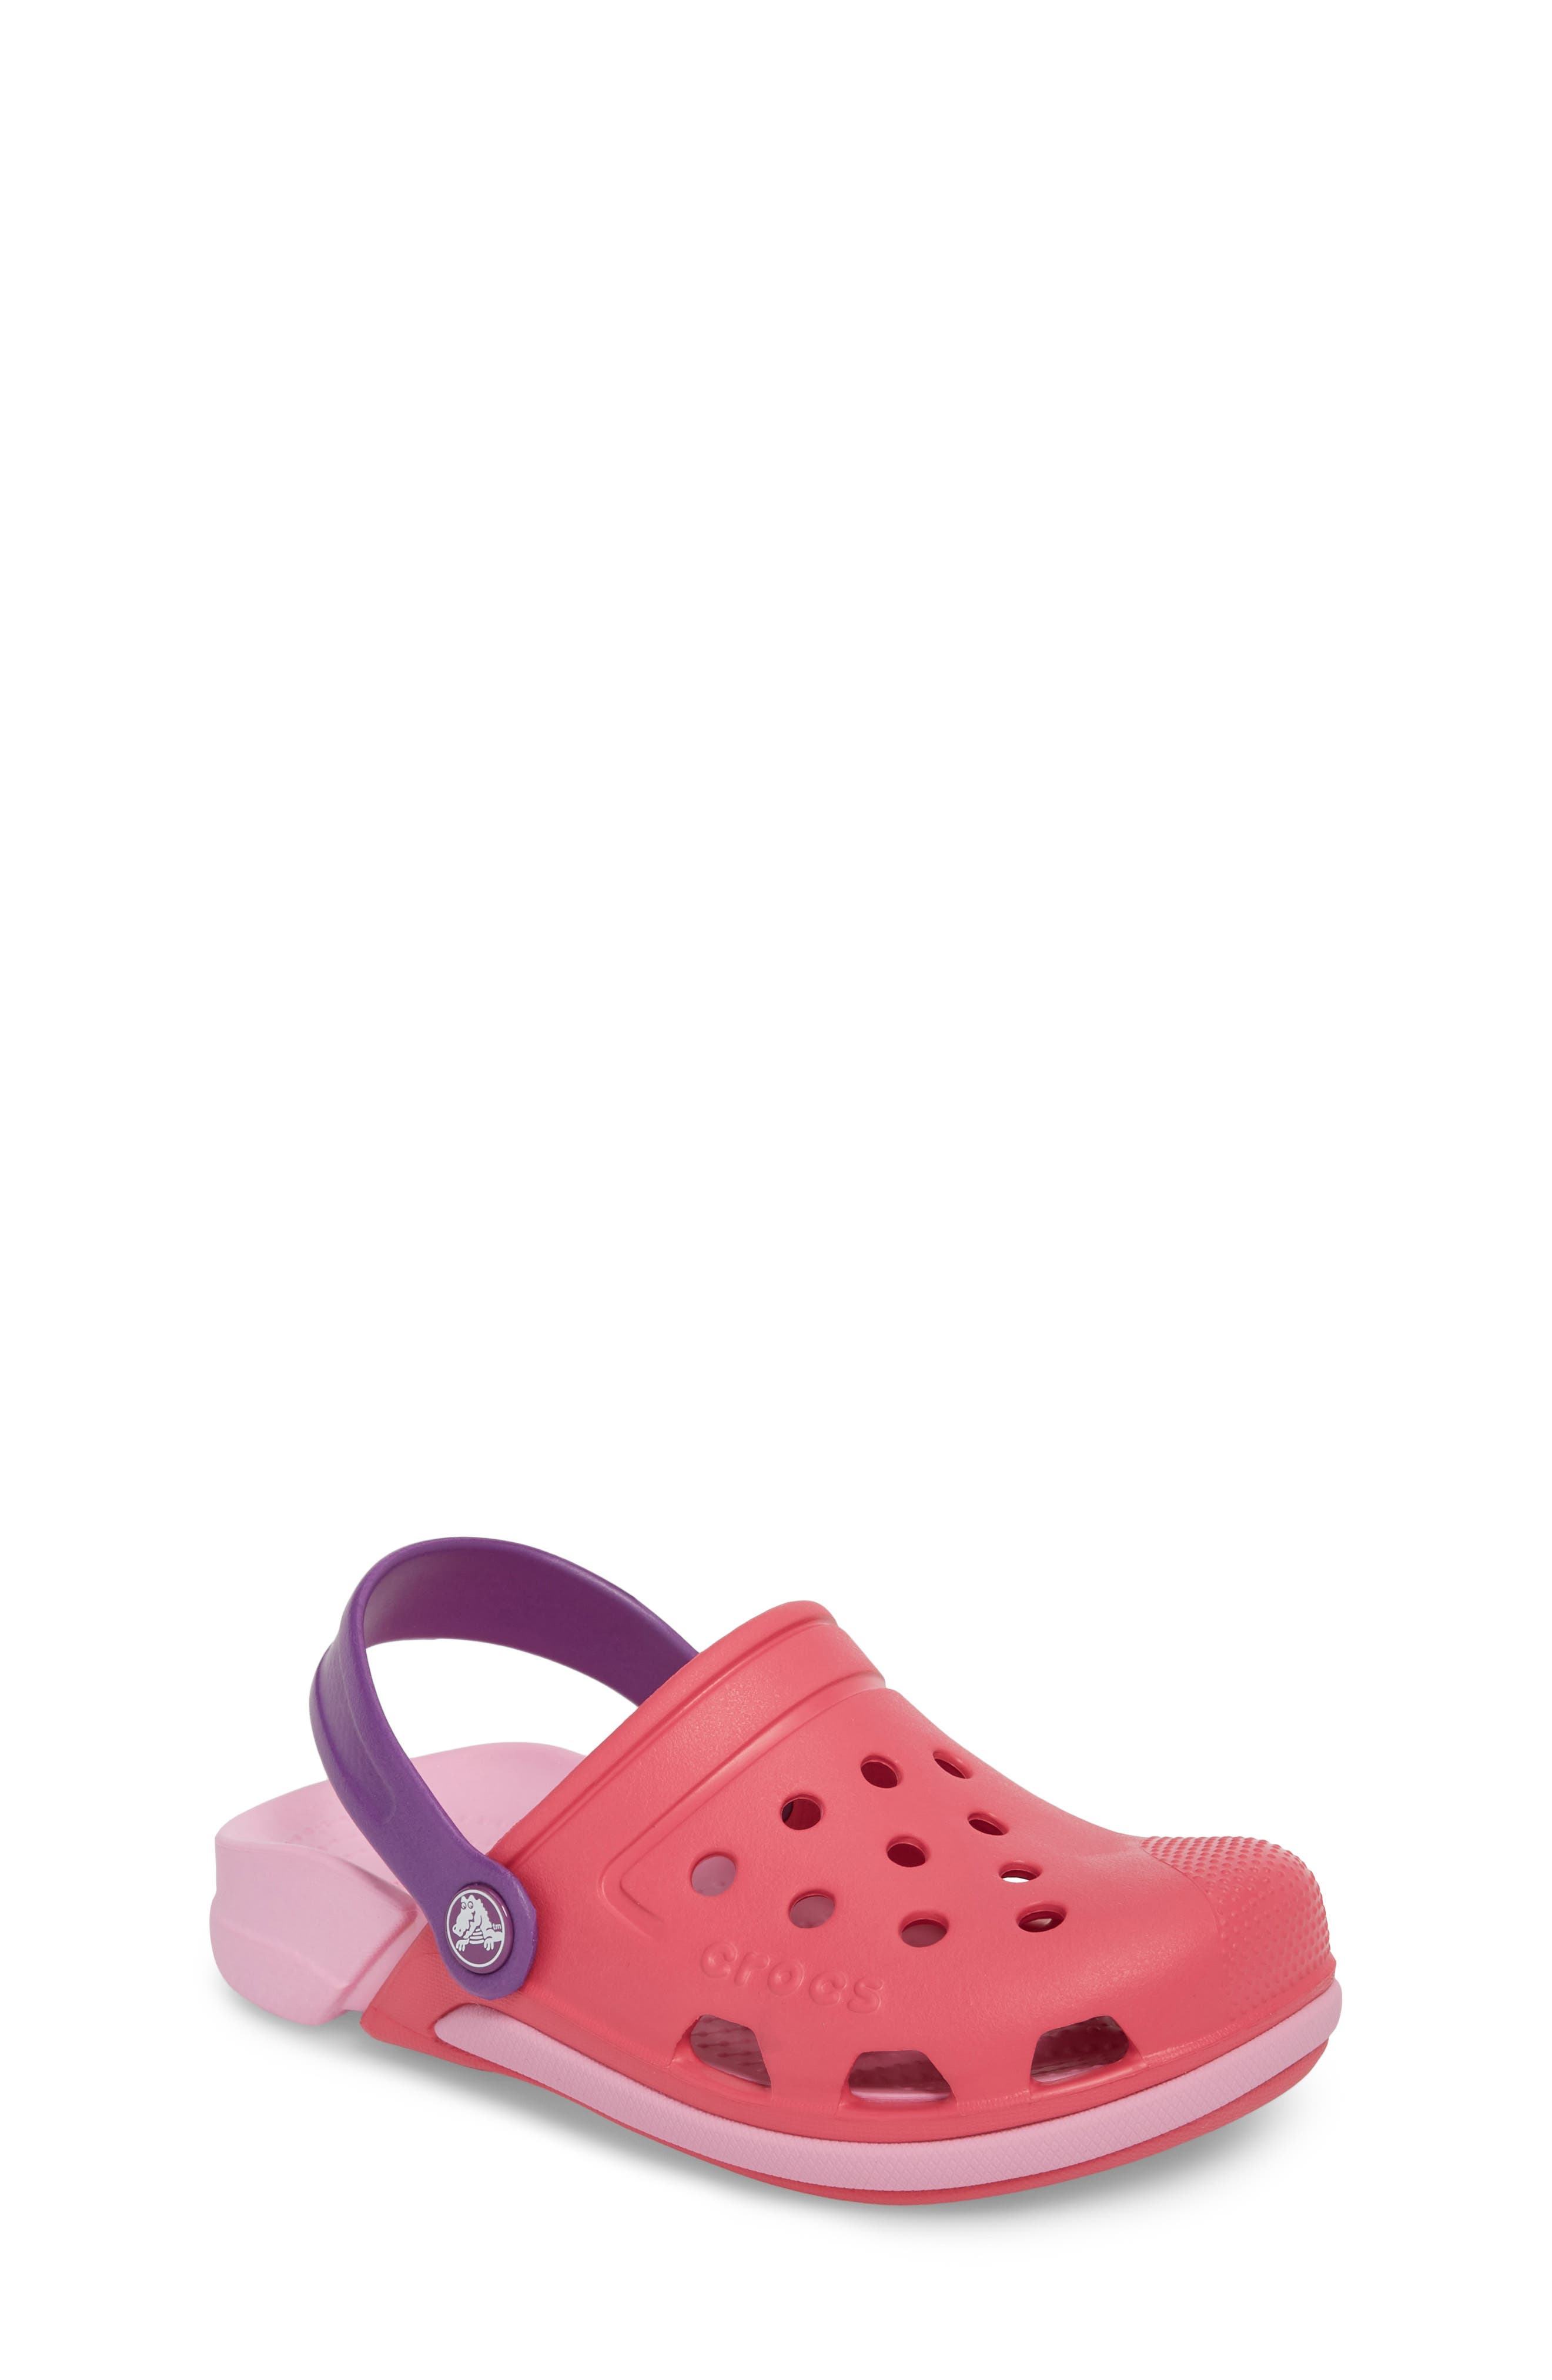 Electro III Slip-On,                         Main,                         color, Paradise Pink/ Carnation